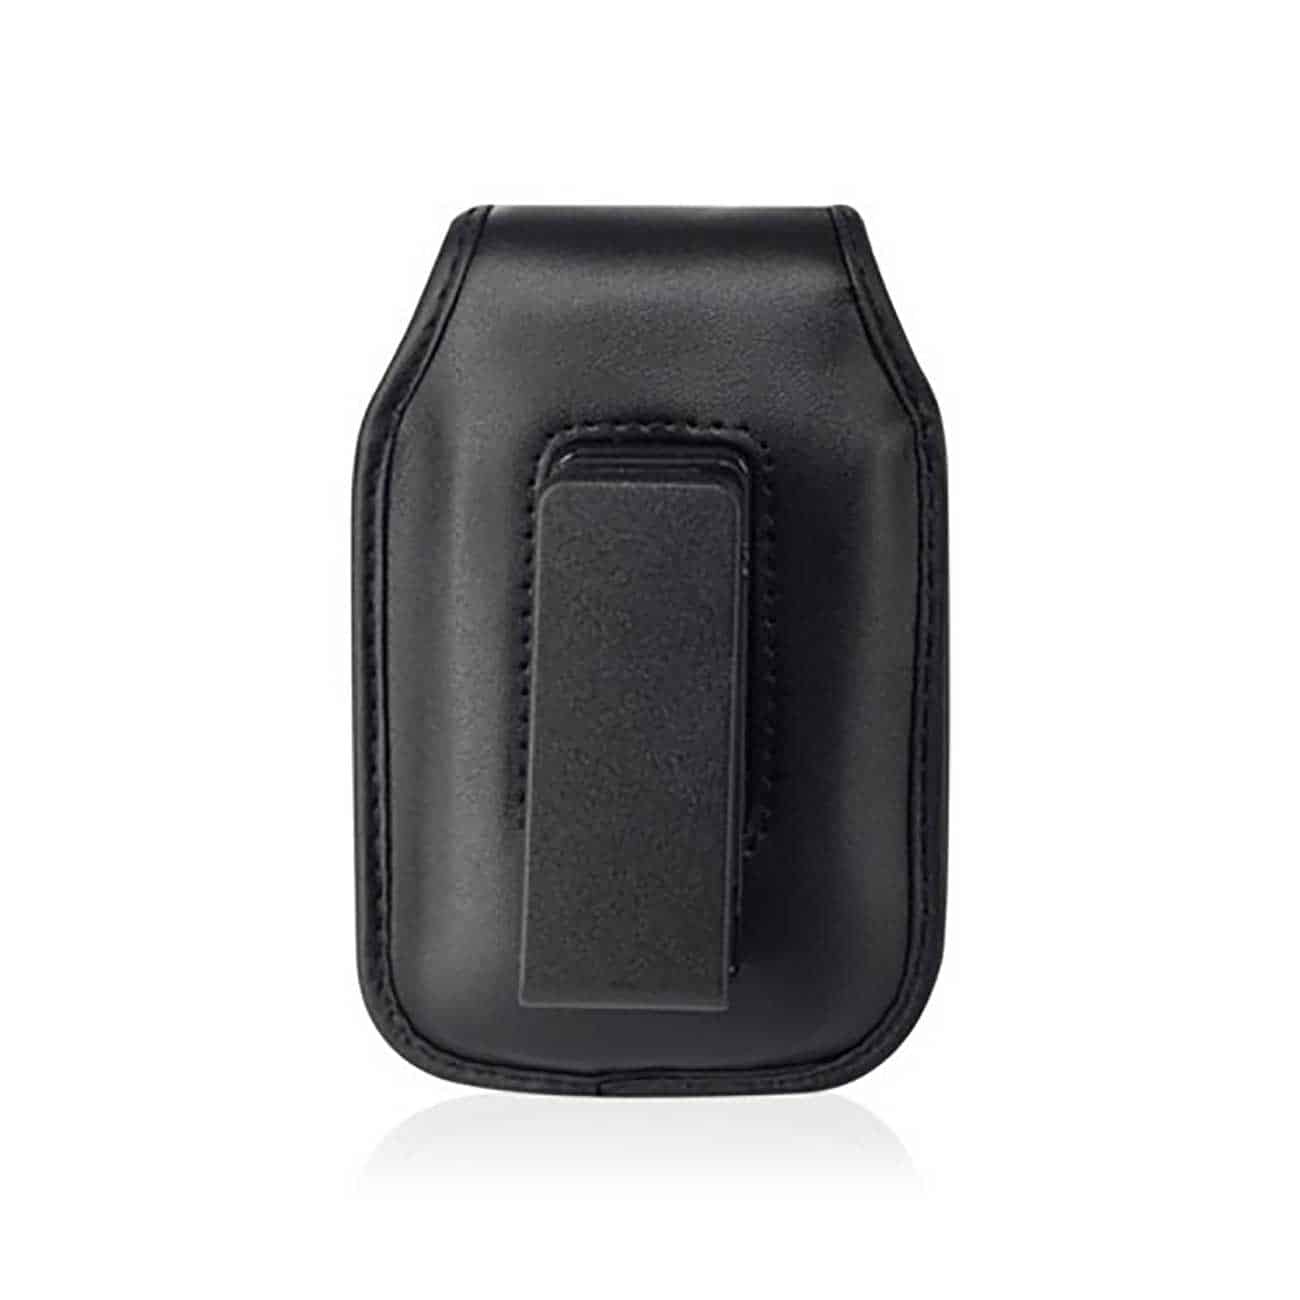 VERTICAL POUCH VP11A MOTOLORA V3 BLACK 4X0.5X2.1 INCHES